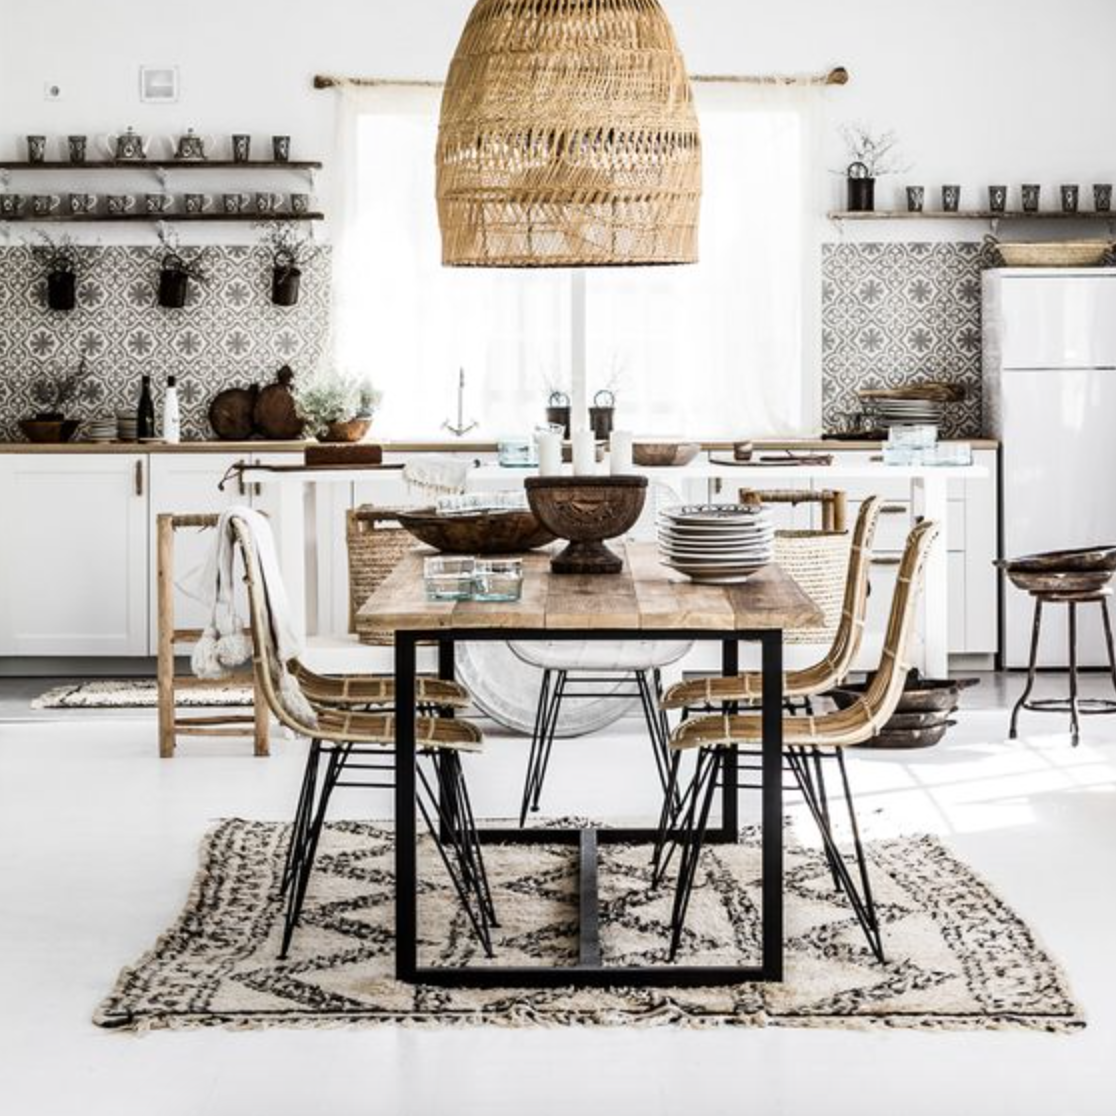 19 Urban Dining Room Designs Decorating Ideas: I Just Love Enormous Woven Lights